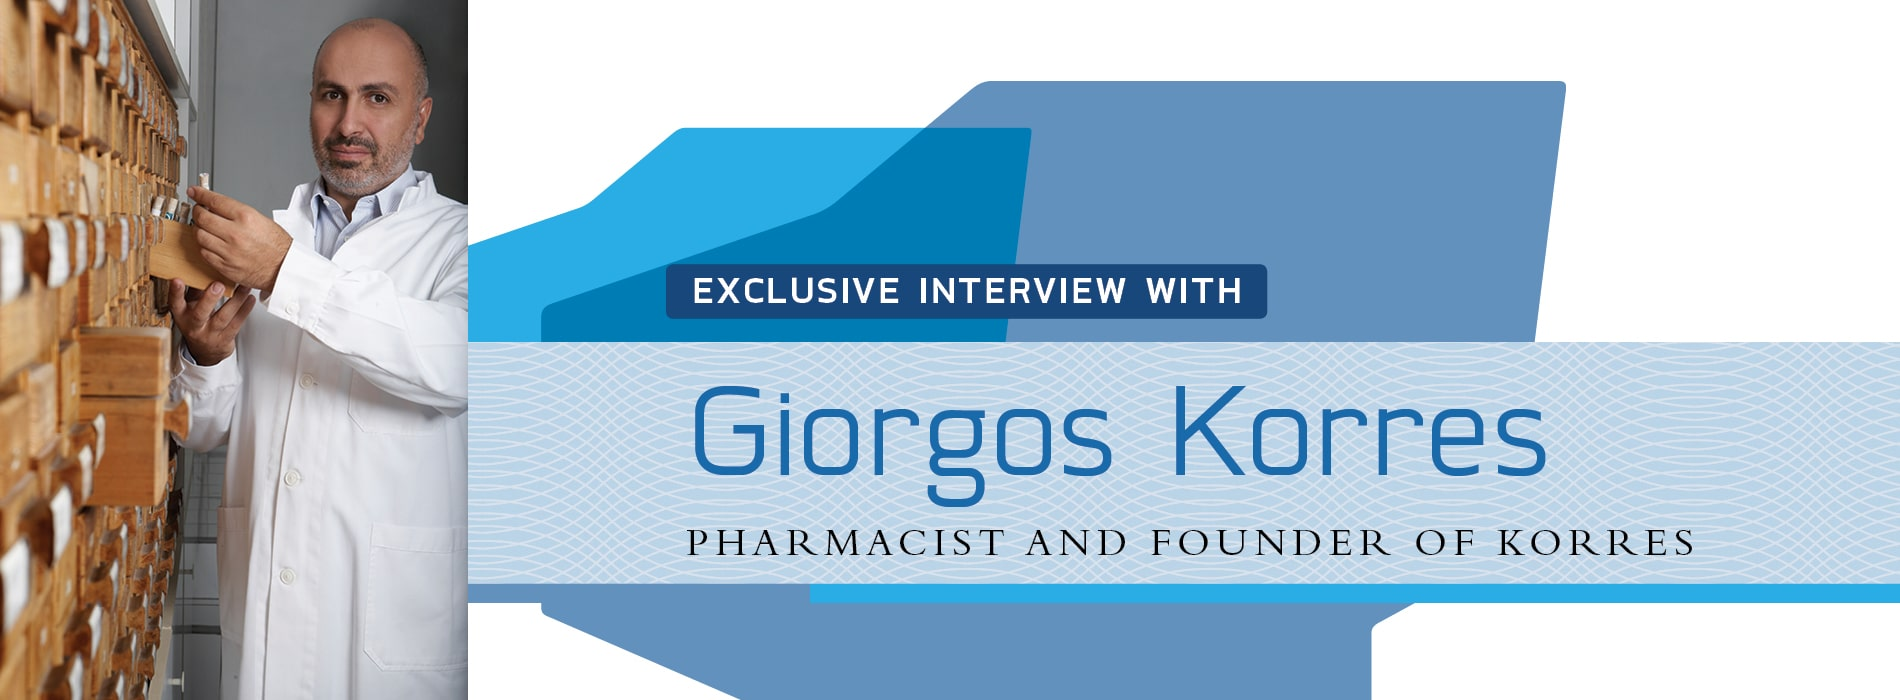 Interview with Giorgos Korres,pharmacist and founder of Greece's KORRES